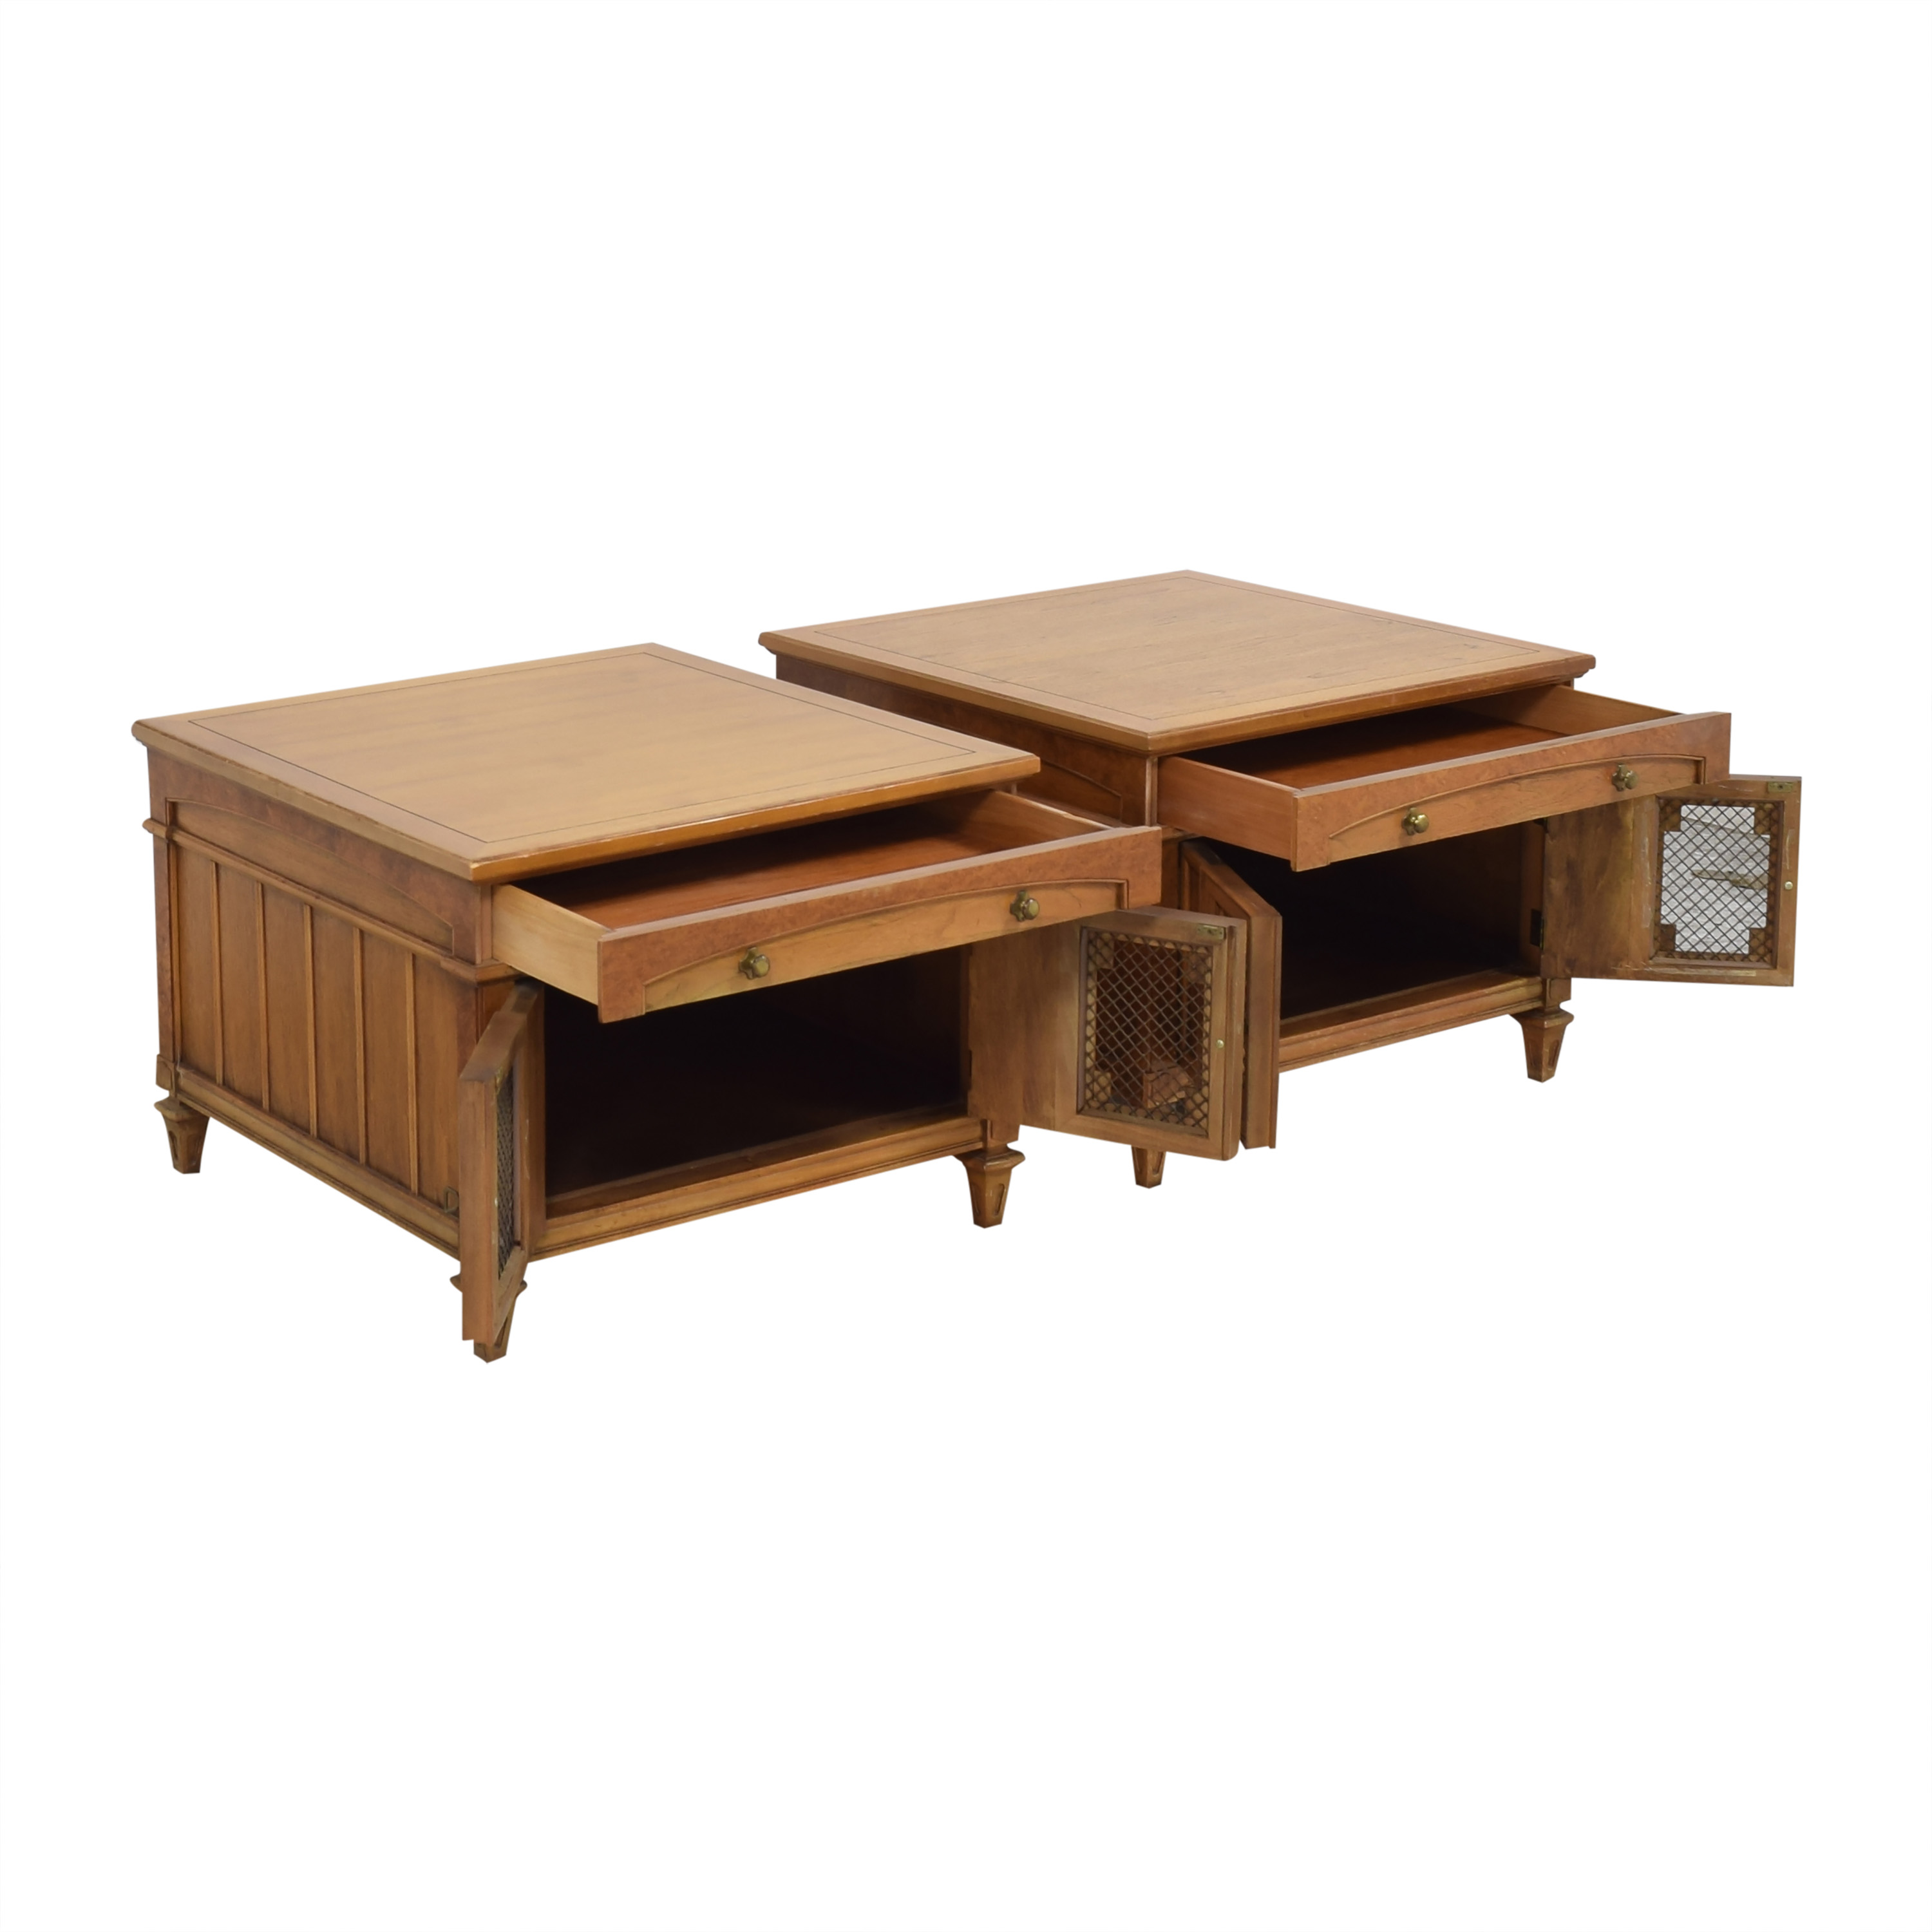 Thomasville Thomasville Two Door End Tables used